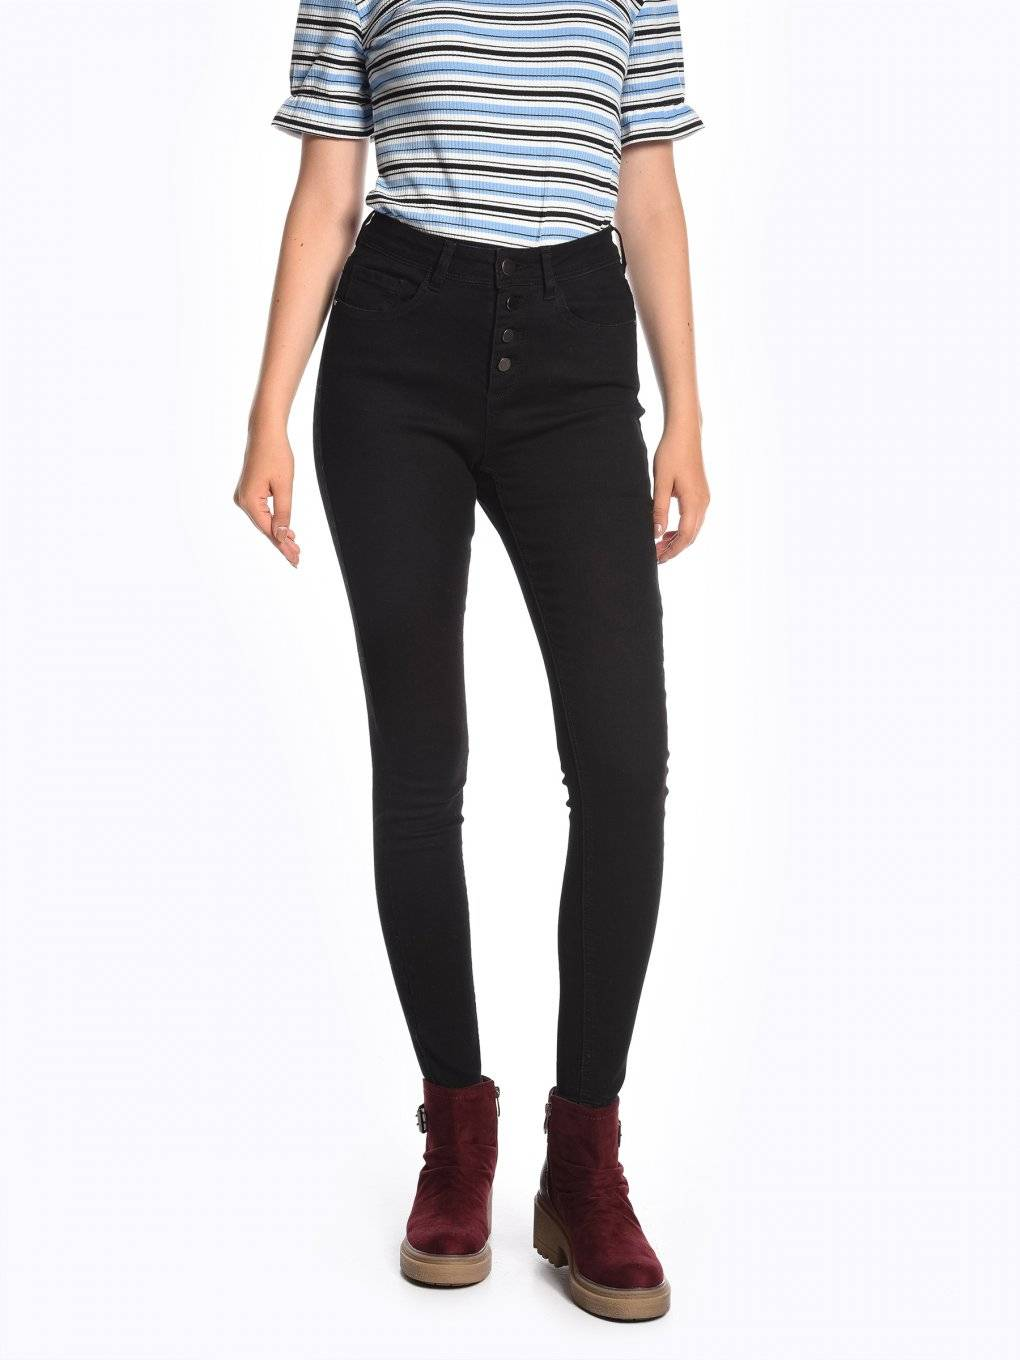 High waisted skinny jeans in black wash